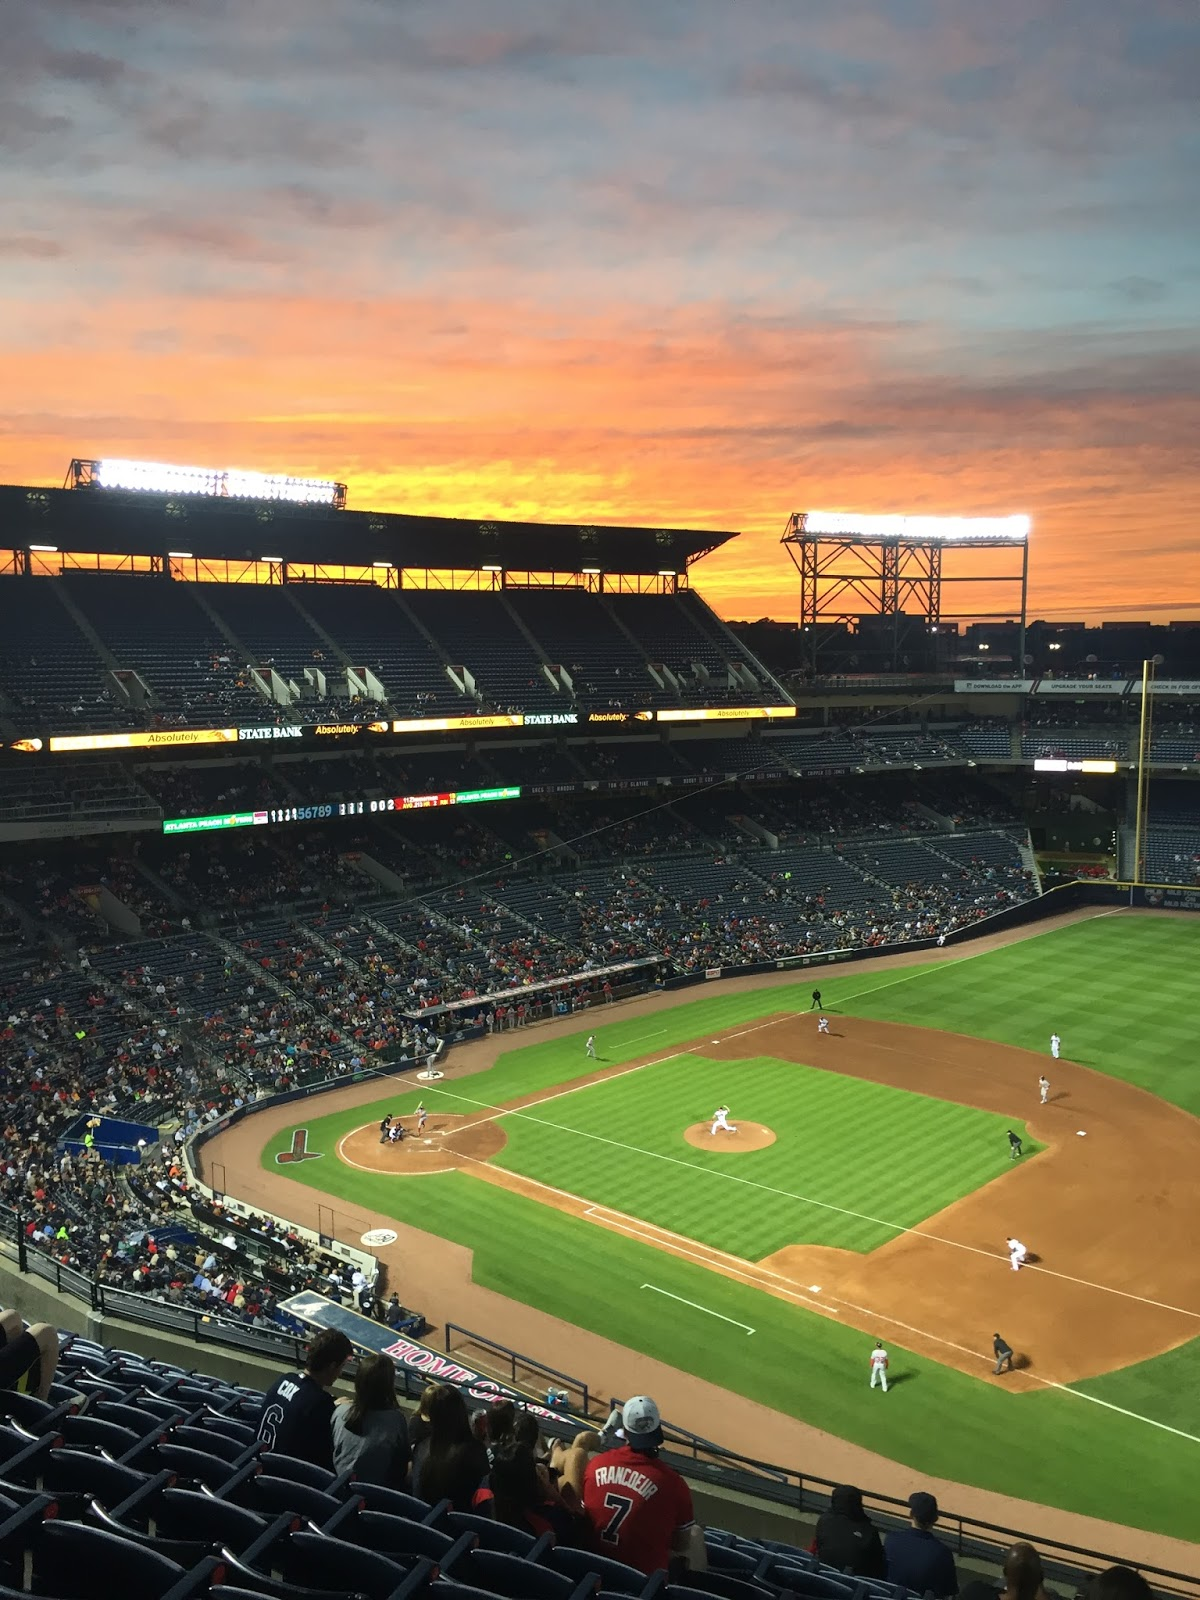 Atlanta Adventues - Braves - Operationtwenties.com